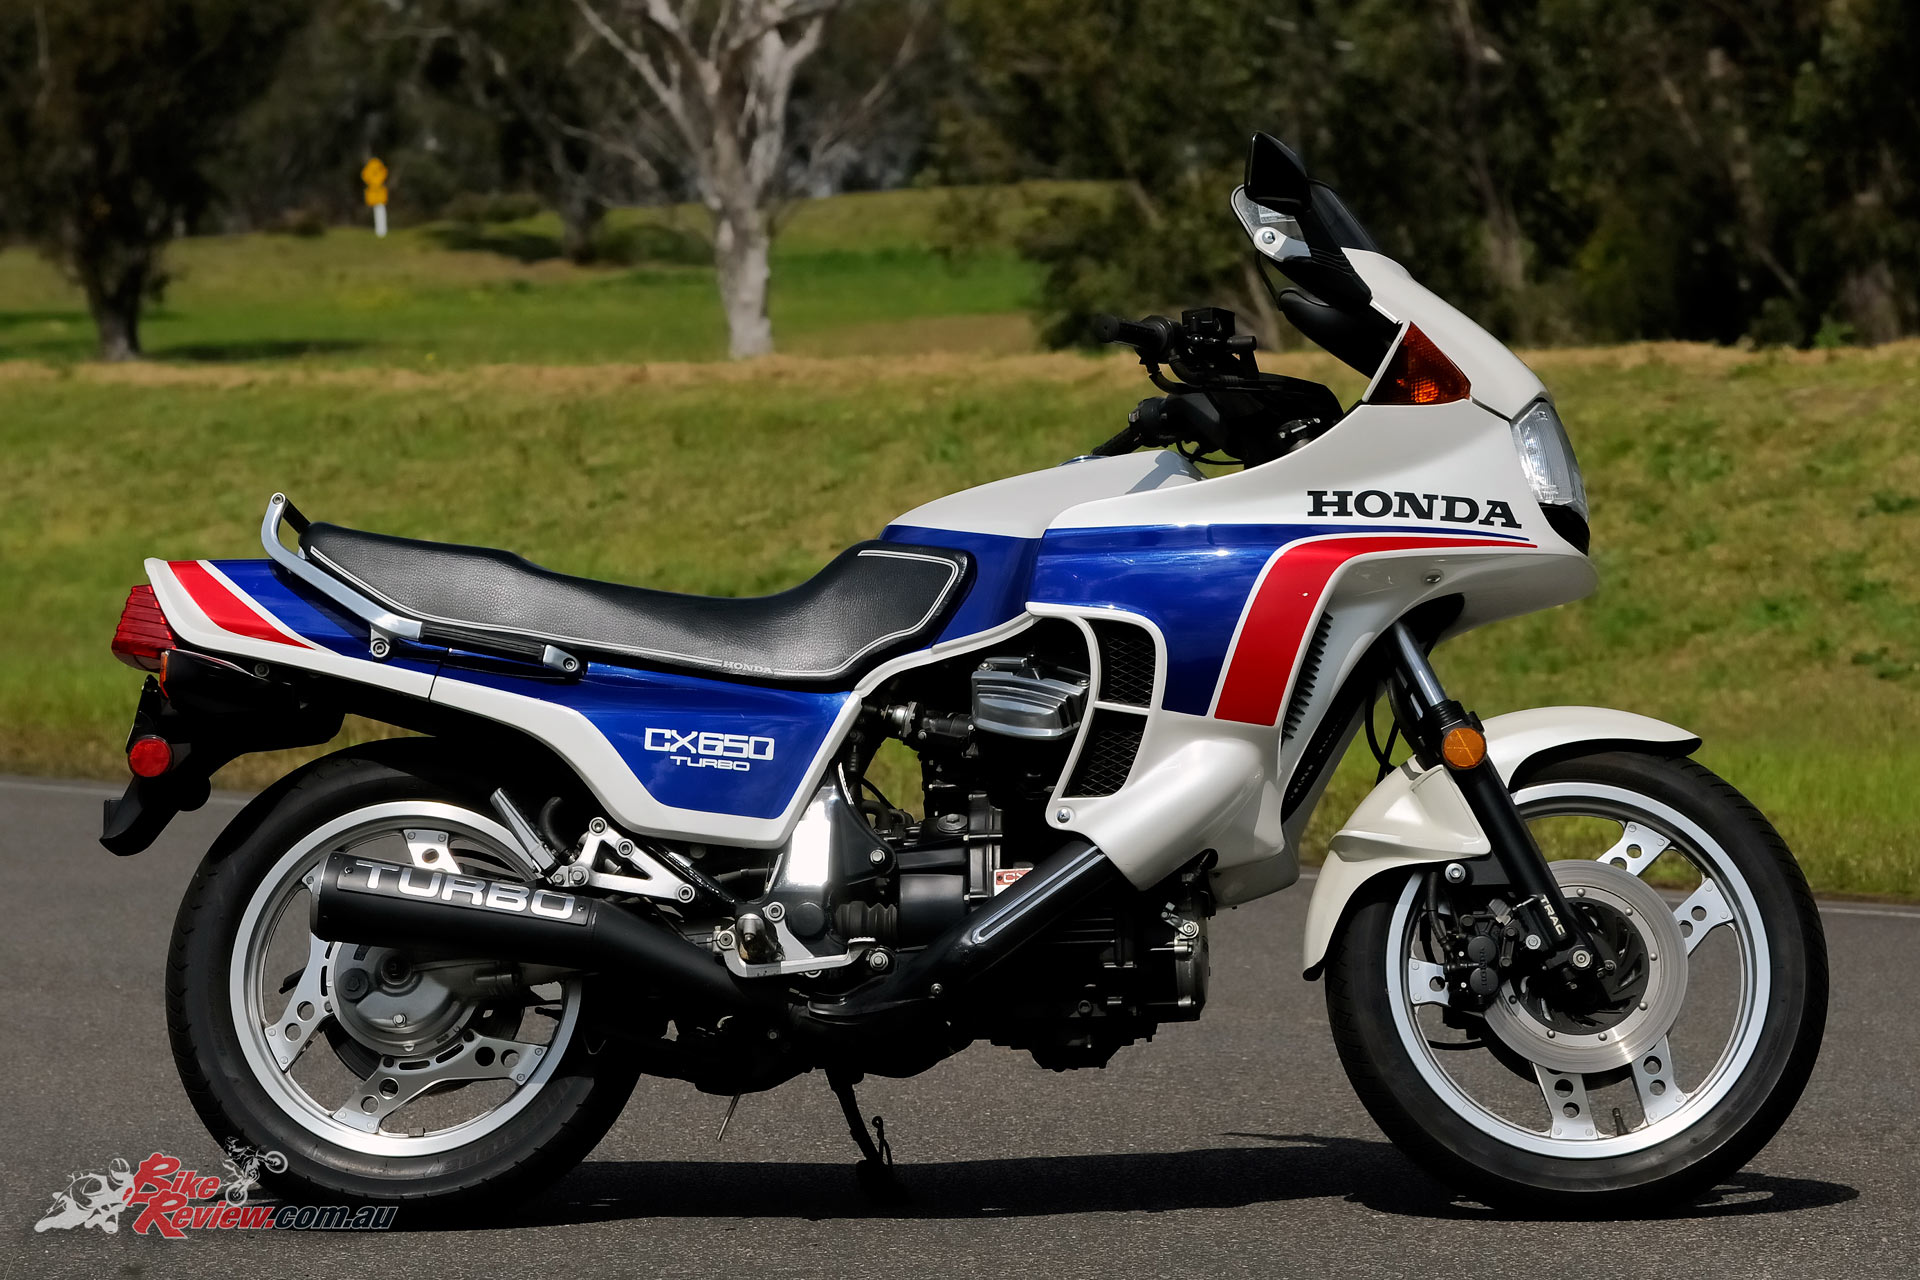 The CX650 replaced the 500 just 12-months after the 500 was released. Fundamentally the same chassis, the 650 has uprated brakes and revised suspension as well as a broader spread of power. The ultimate sports tourer, aimed squarely at the American market and only sold in the USA.